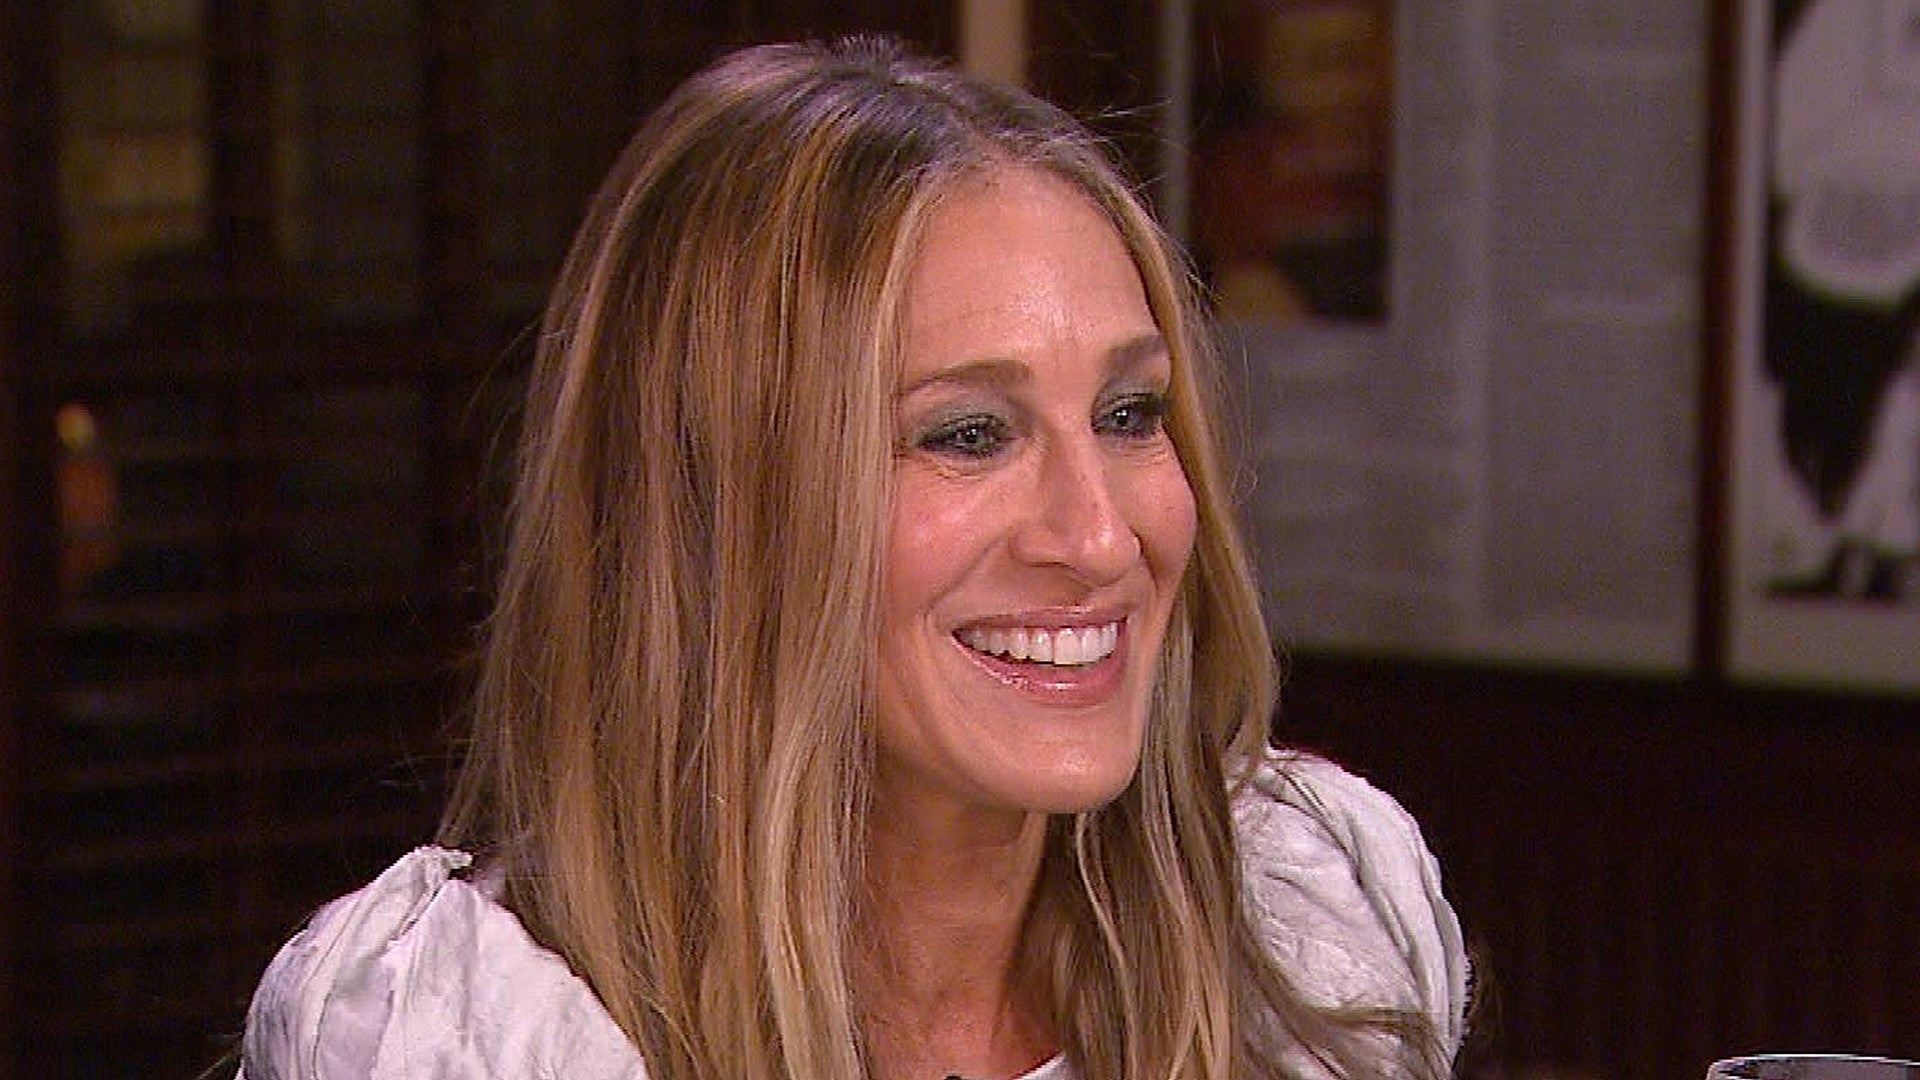 45 interesting facts about Sarah Jessica Parker: She has